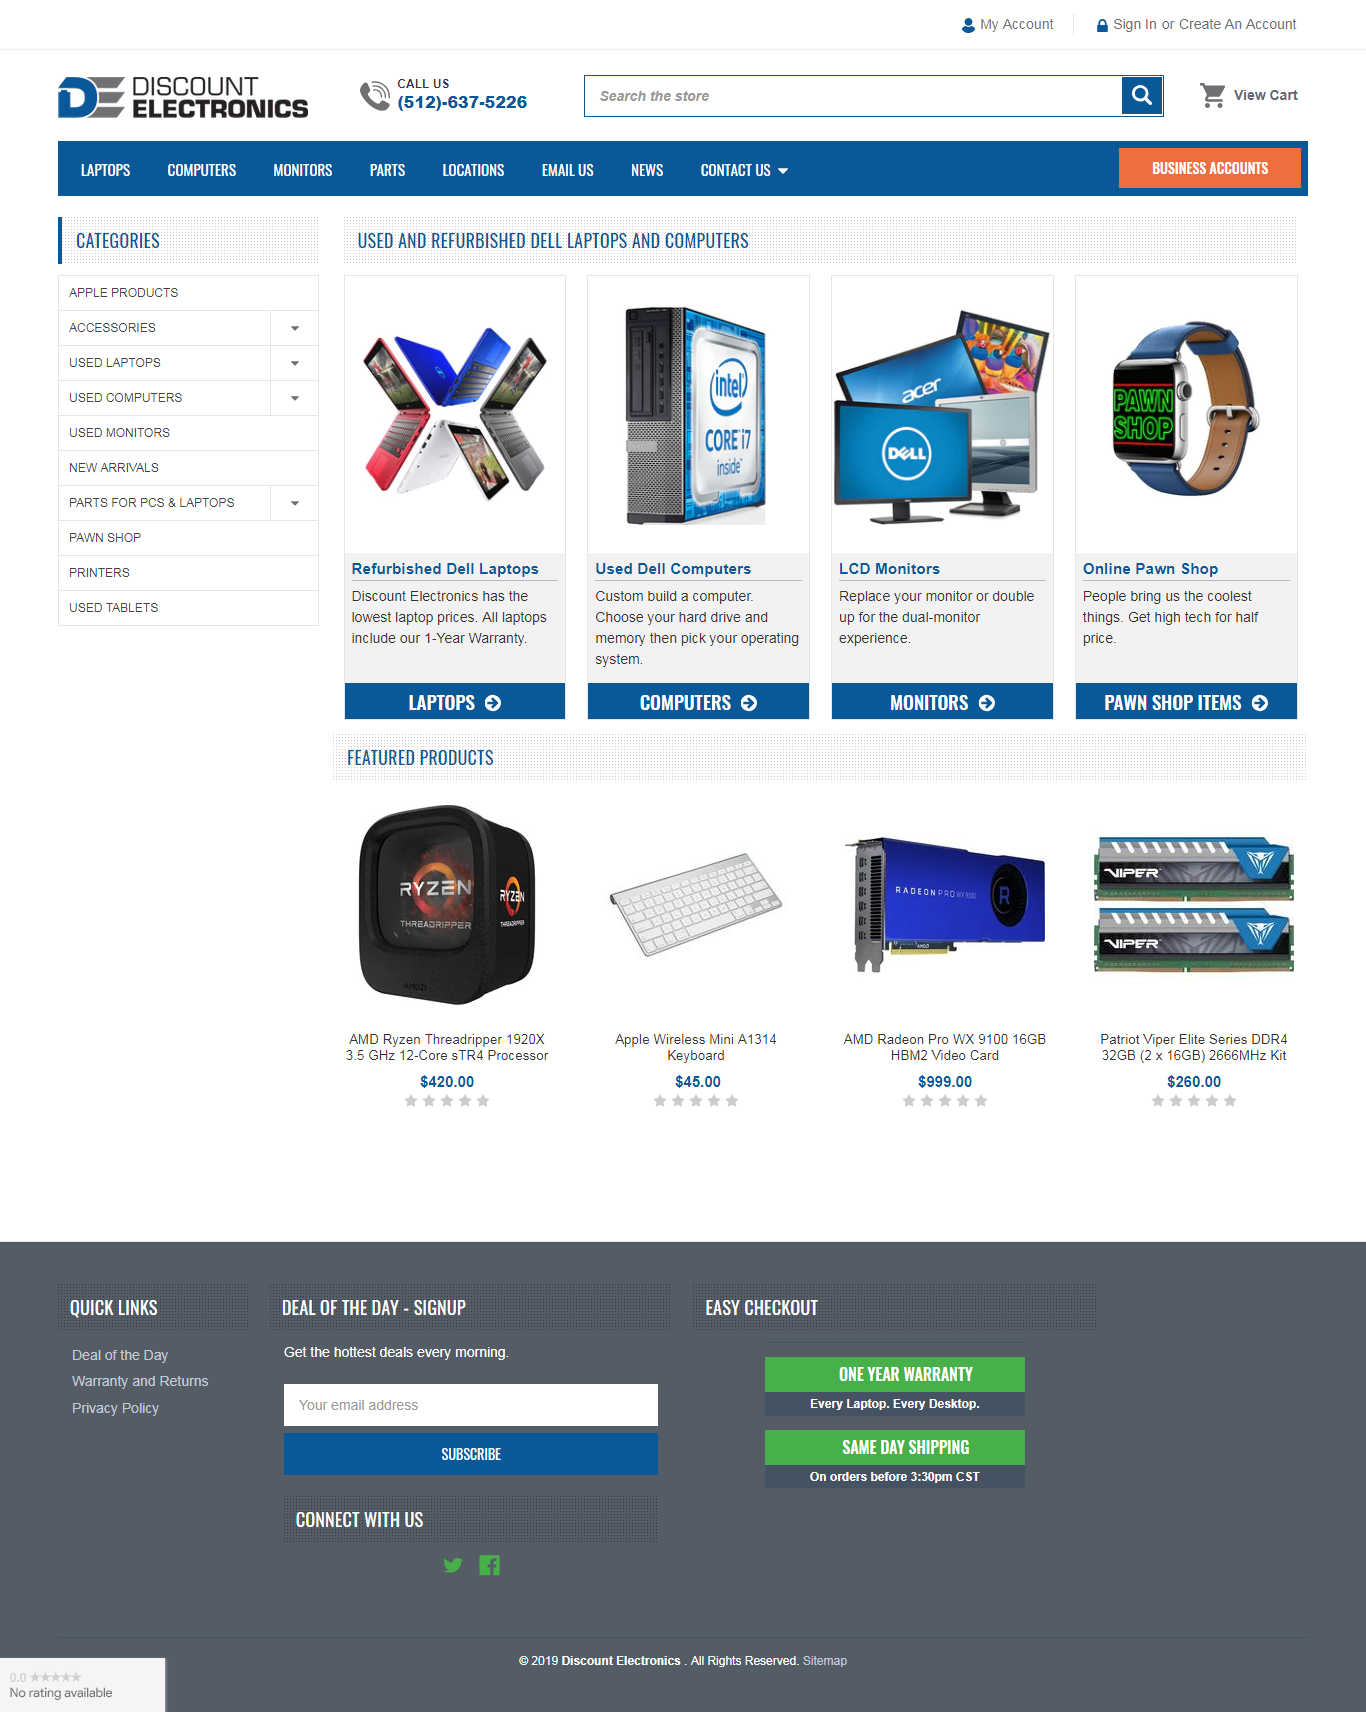 bigcommerce website development company